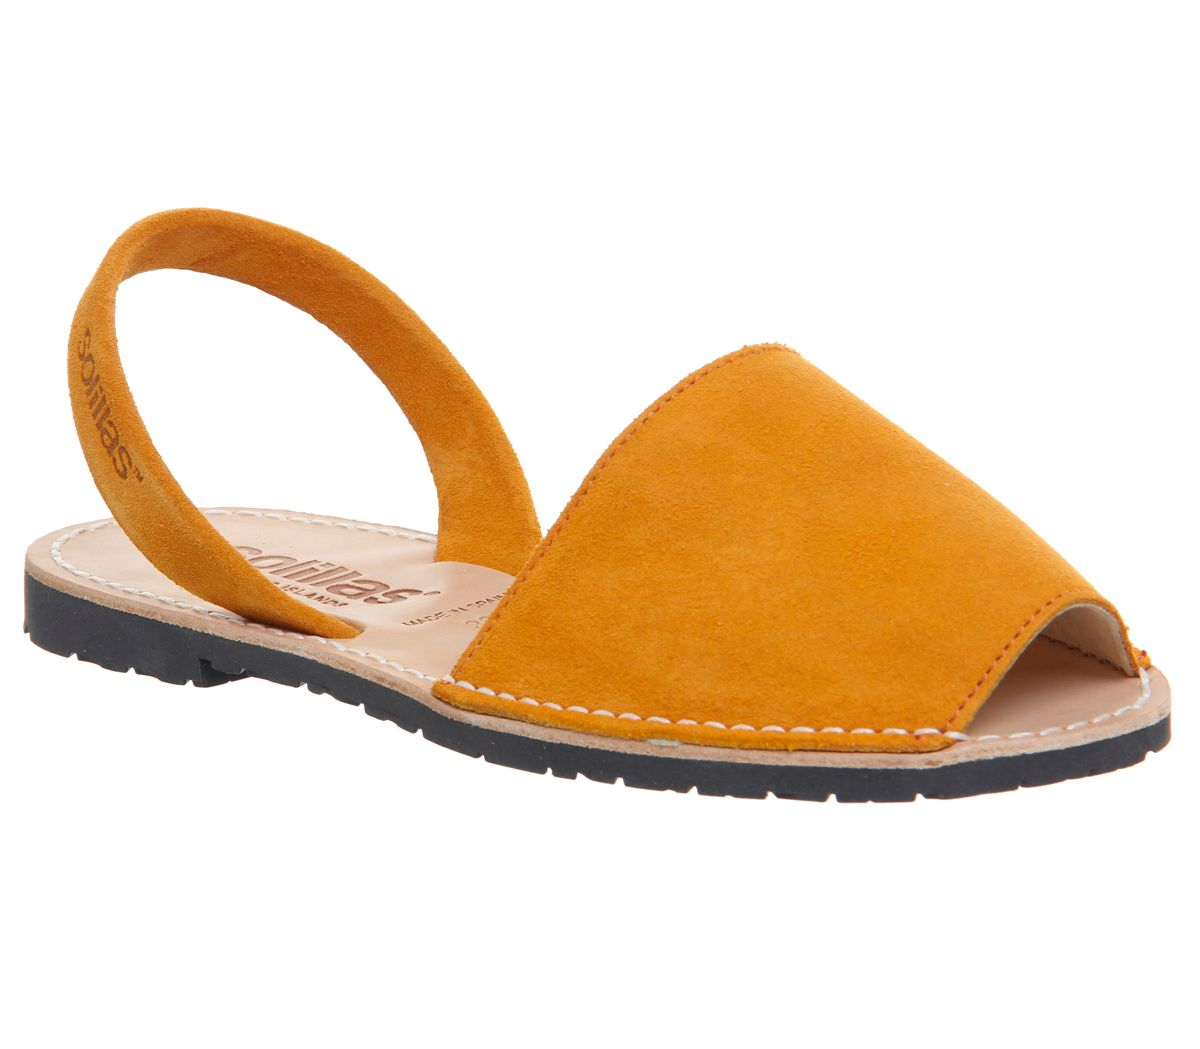 Solillas Solillas Sandals, Mustard